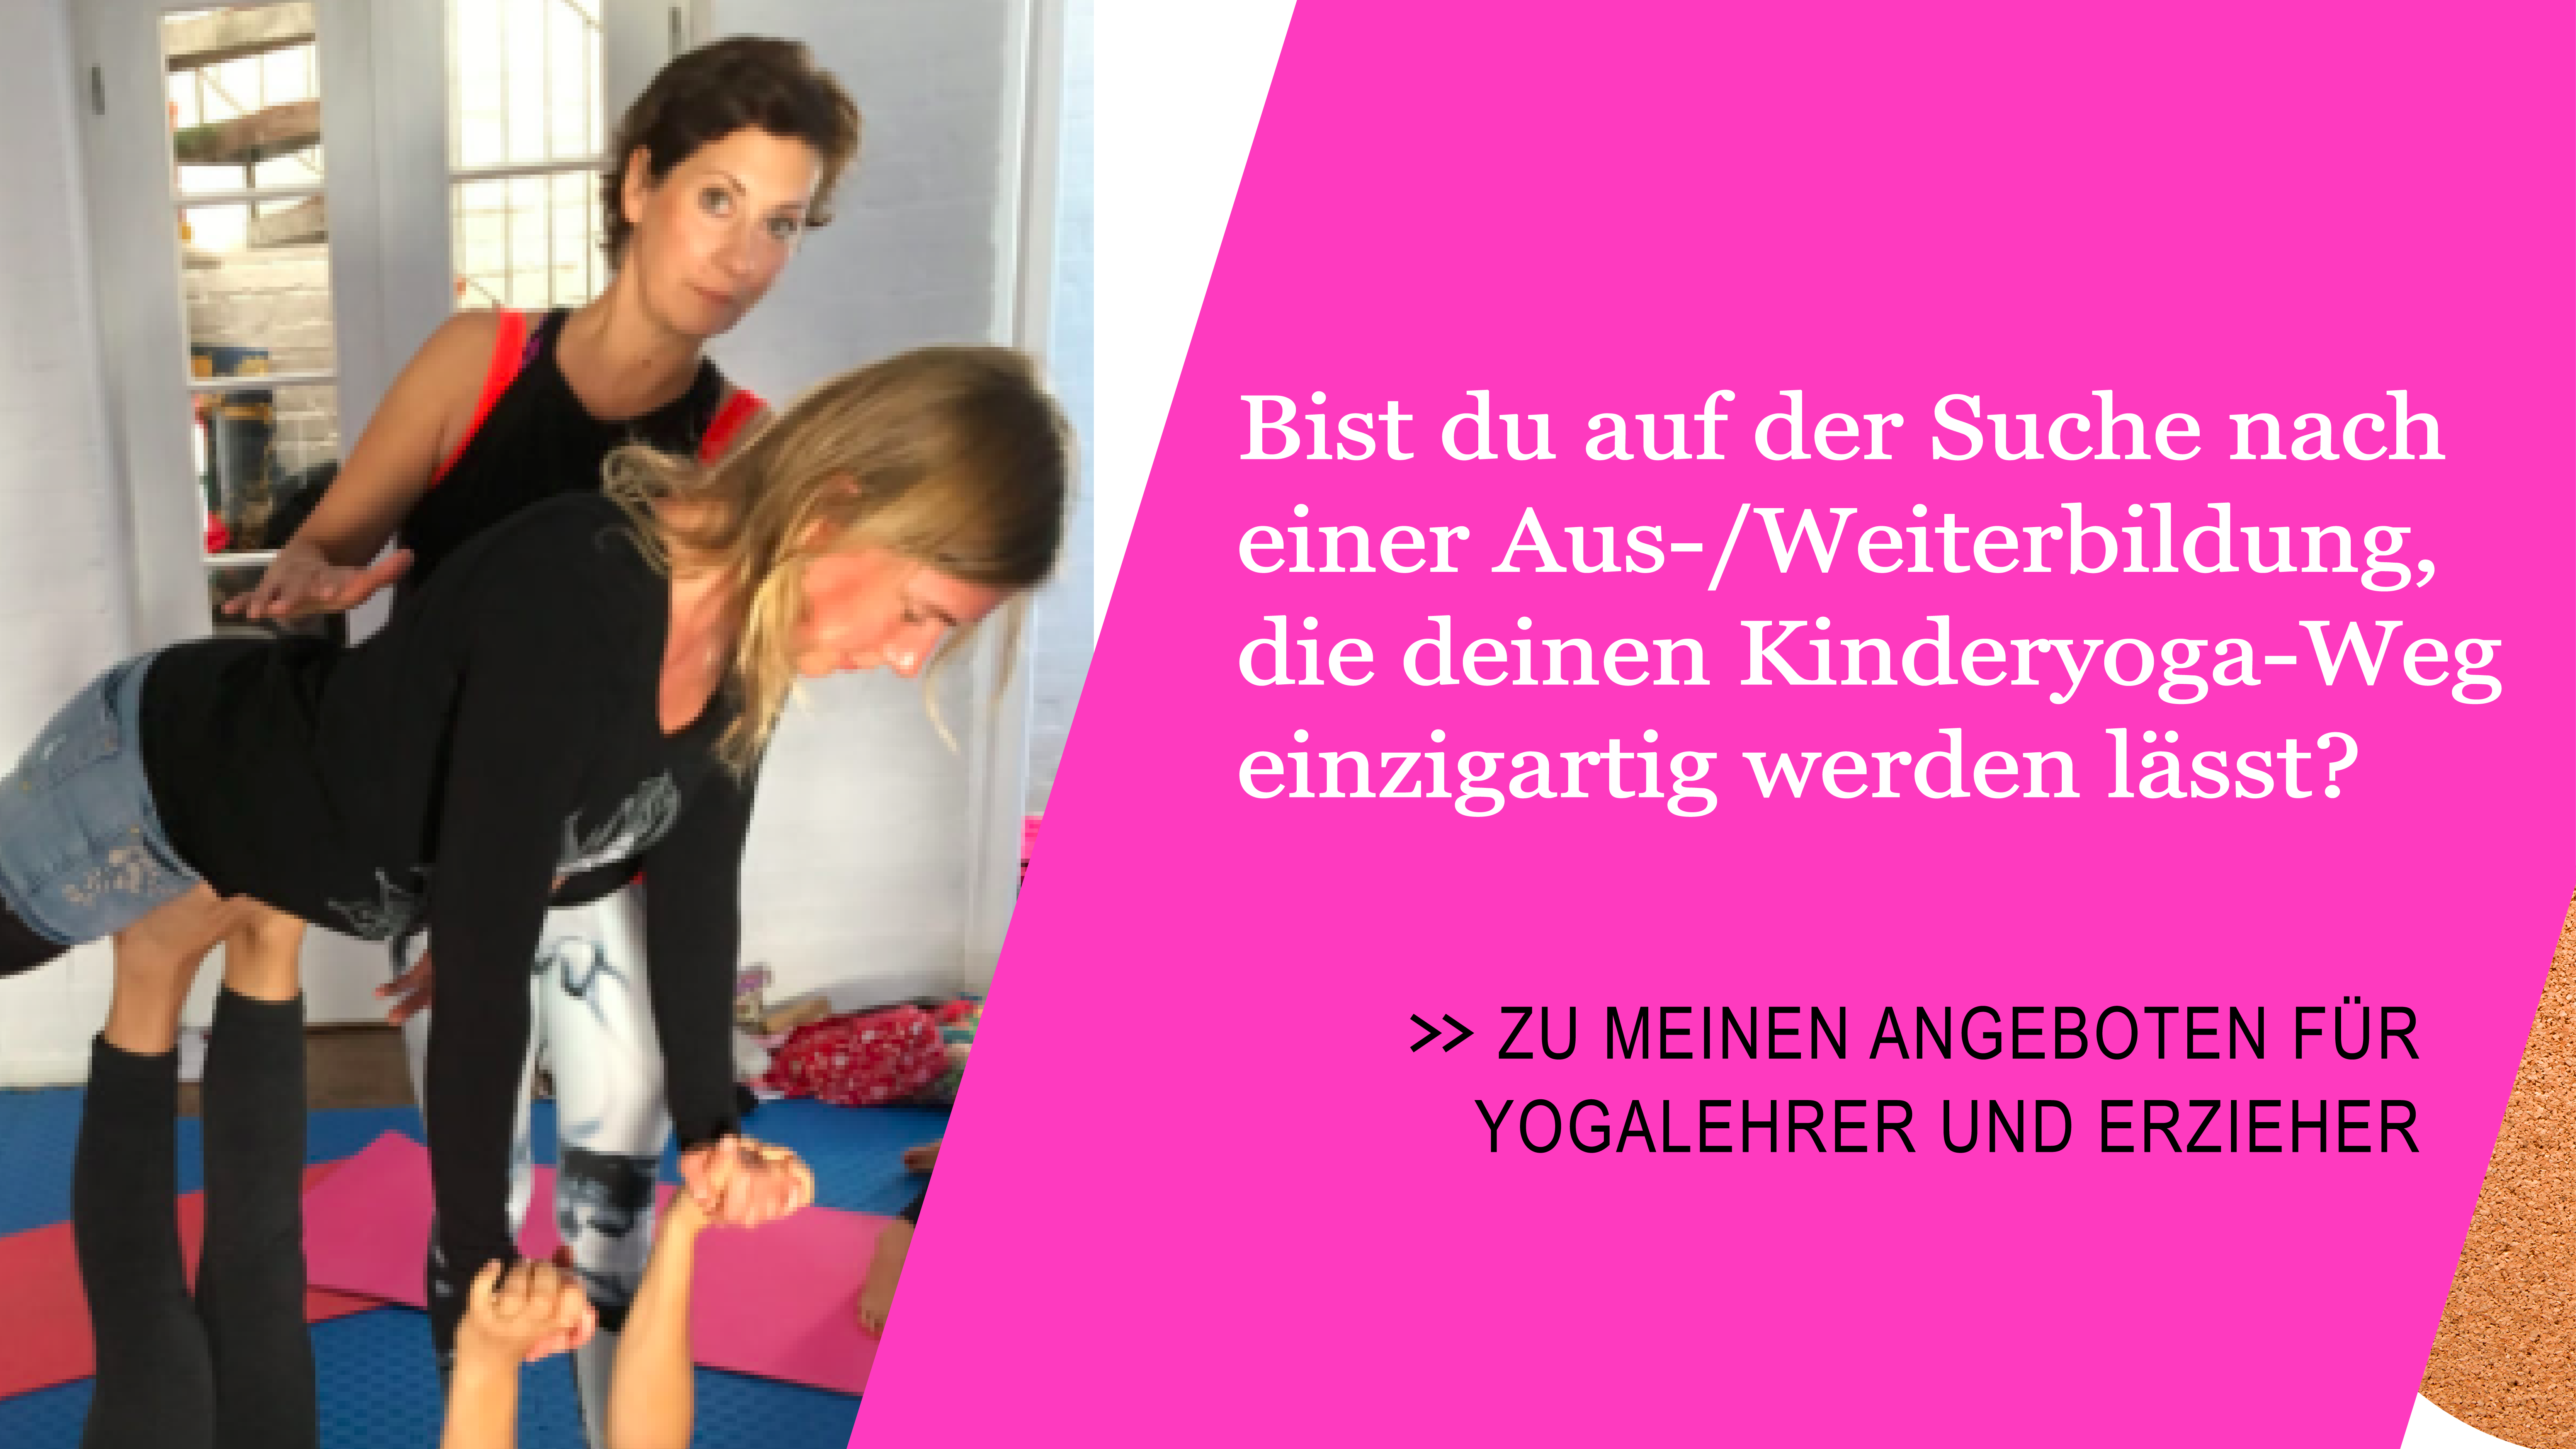 Kinderyoga Berlin Slider 2